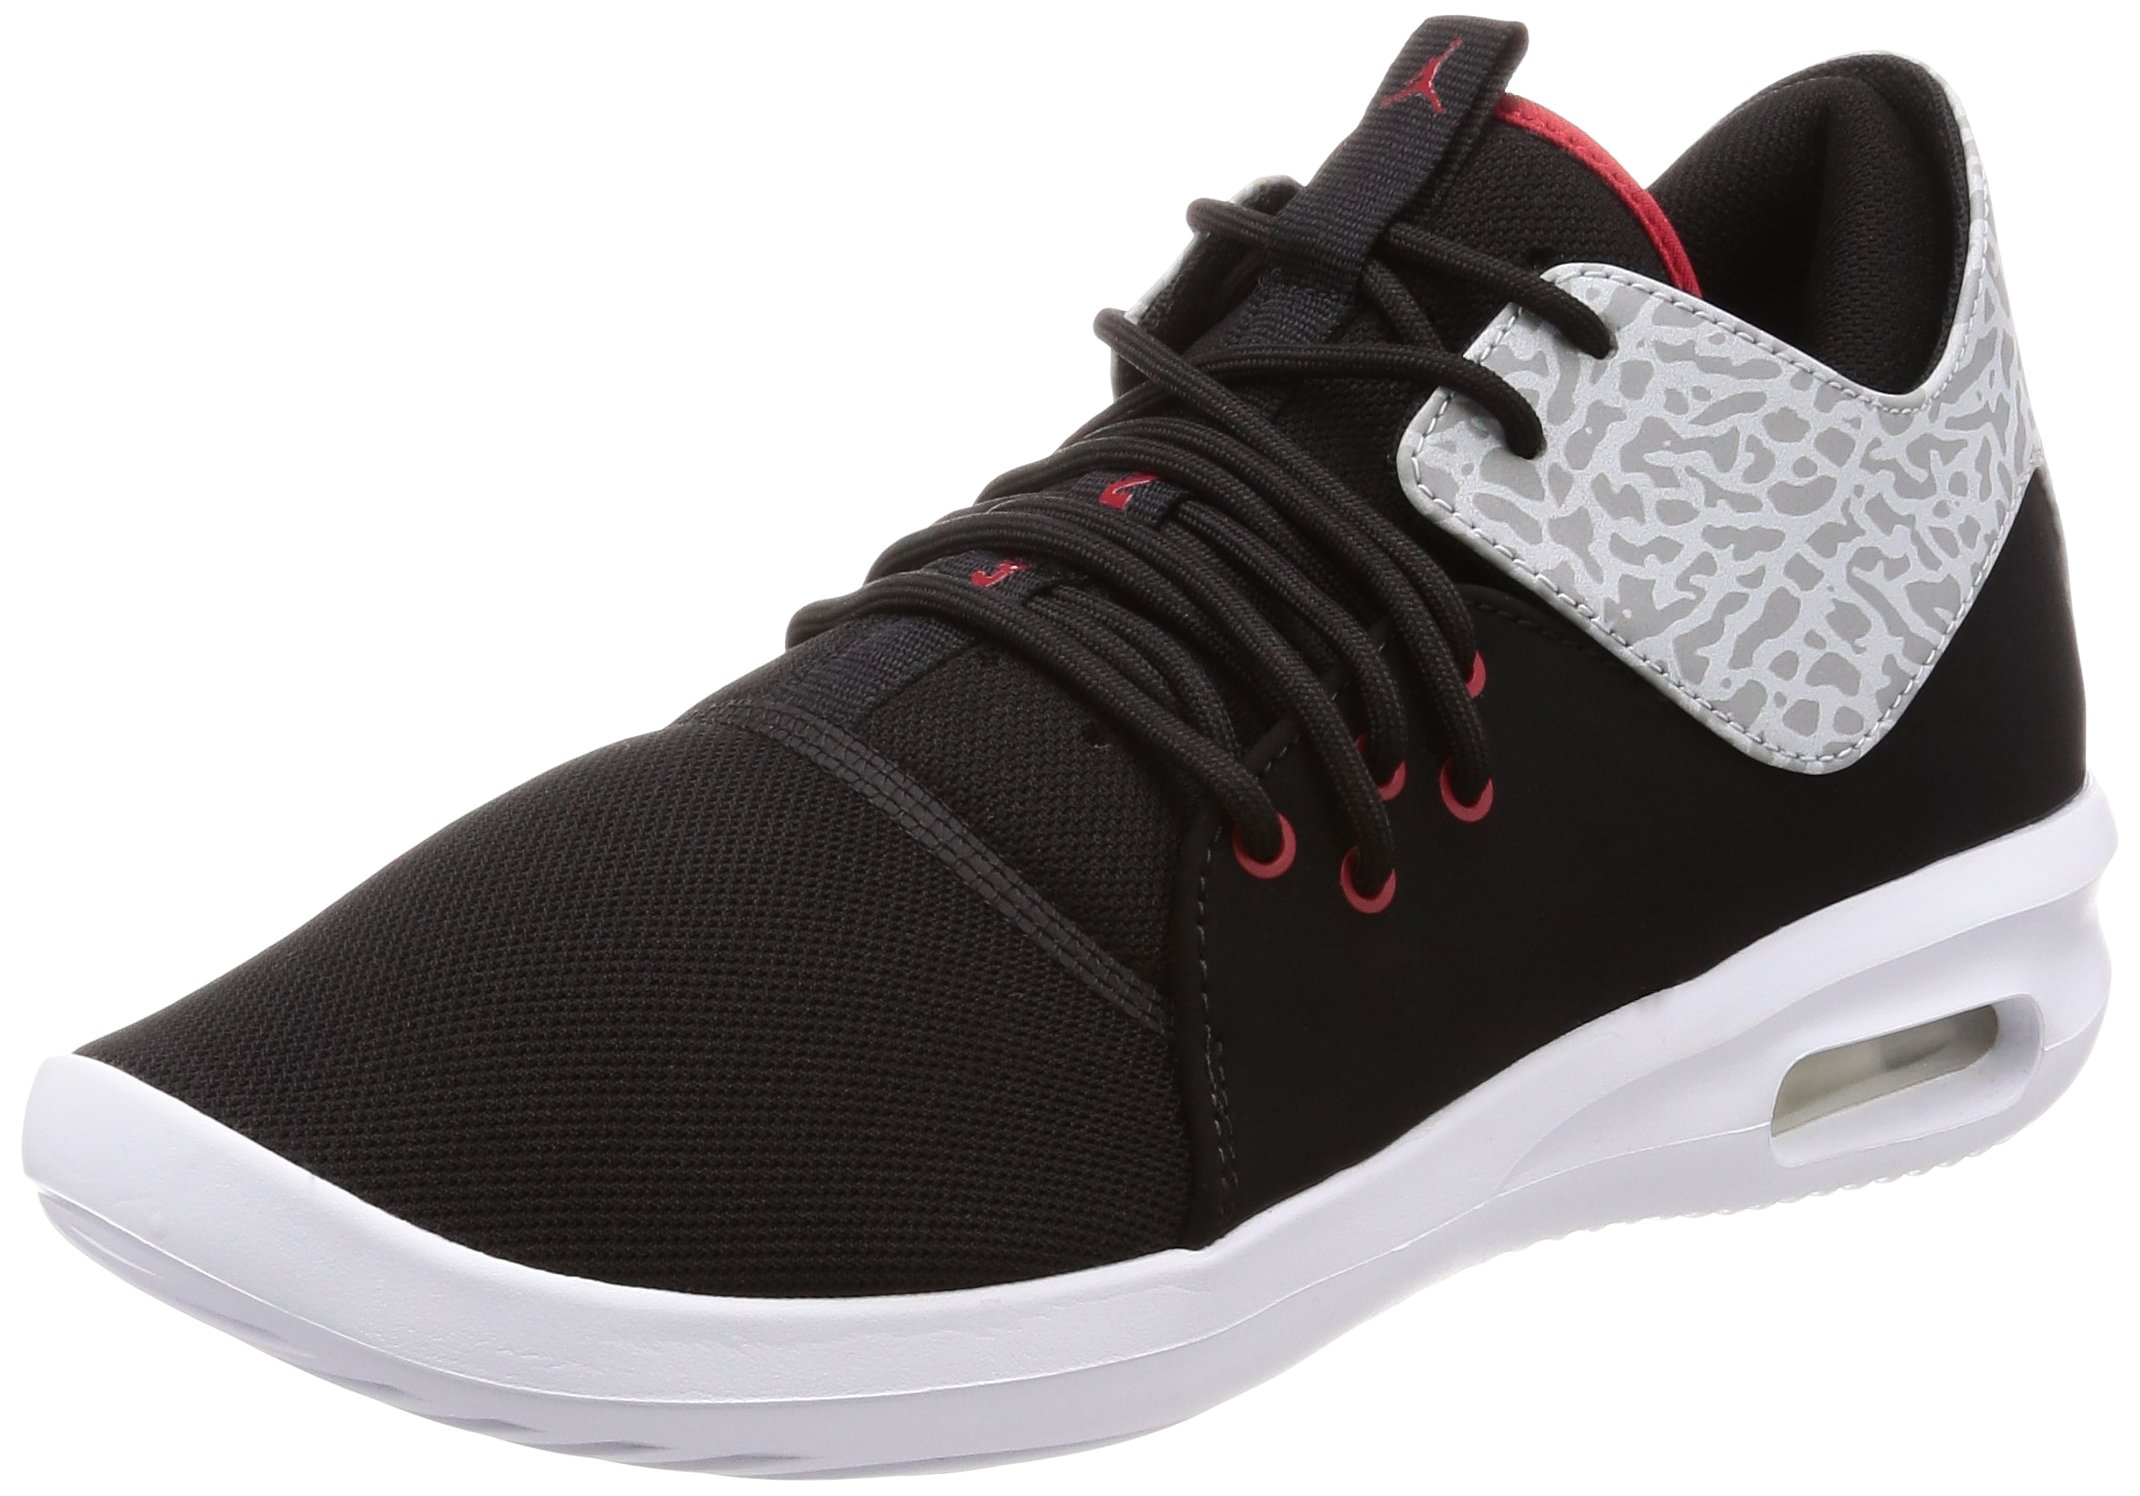 new styles 25aee 542d0 Galleon - Jordan Nike Men s Air First Class Black Gym Red White Casual Shoe  10.5 Men US